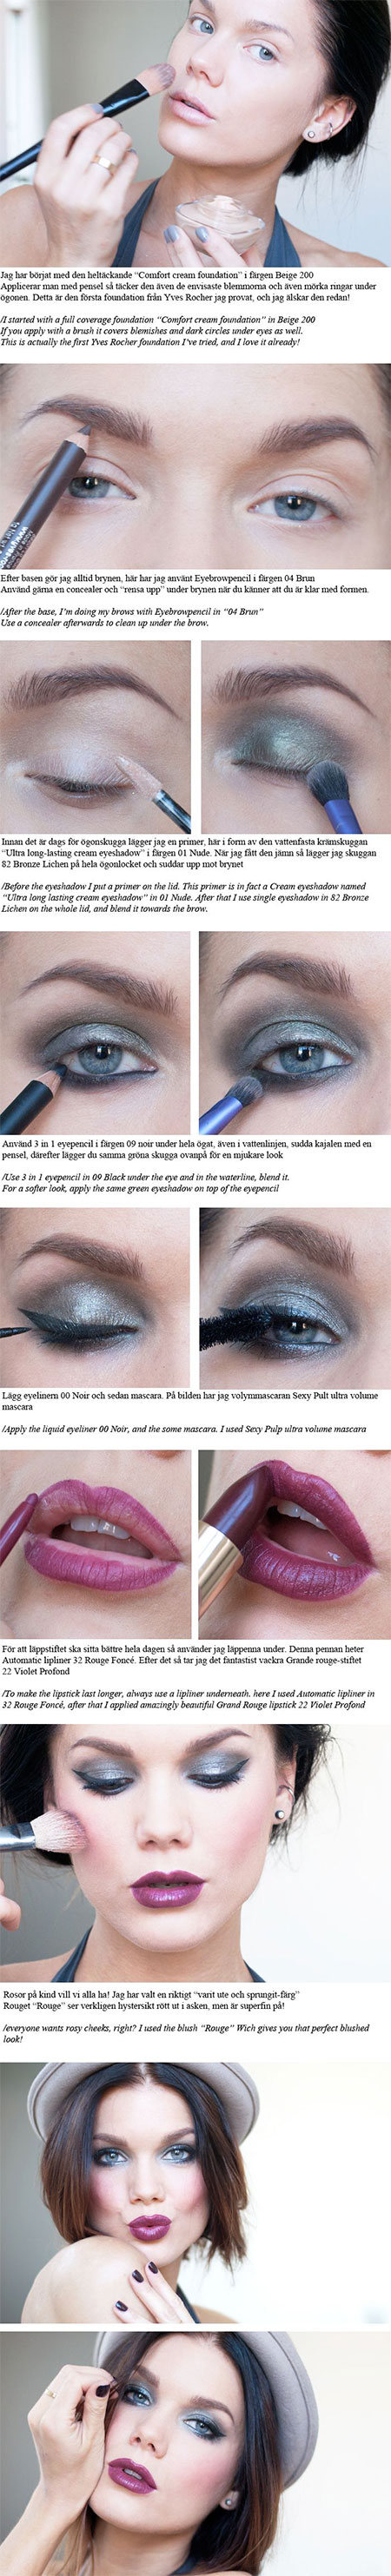 20-Easy-Fall-Make-Up-Tutorials-For-Beginners-Learners-2014-14